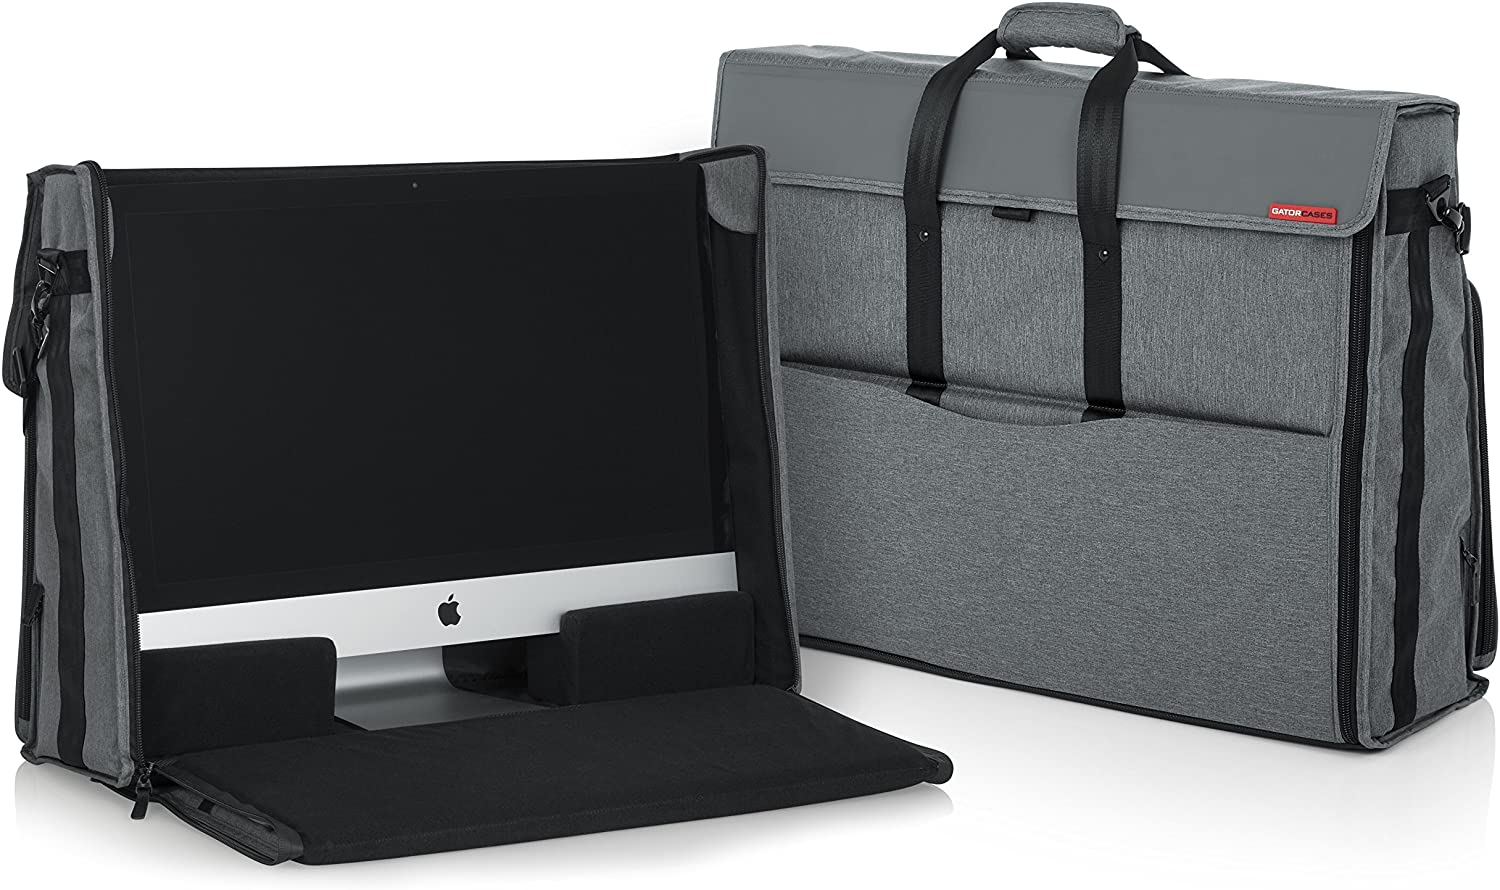 Grey Curmio Travel Carrying Bag for Apple 27 iMac Desktop Computer Protective Storage Case Monitor Dust Cover with Rubber Handle for 27 iMac Screen and Accessories